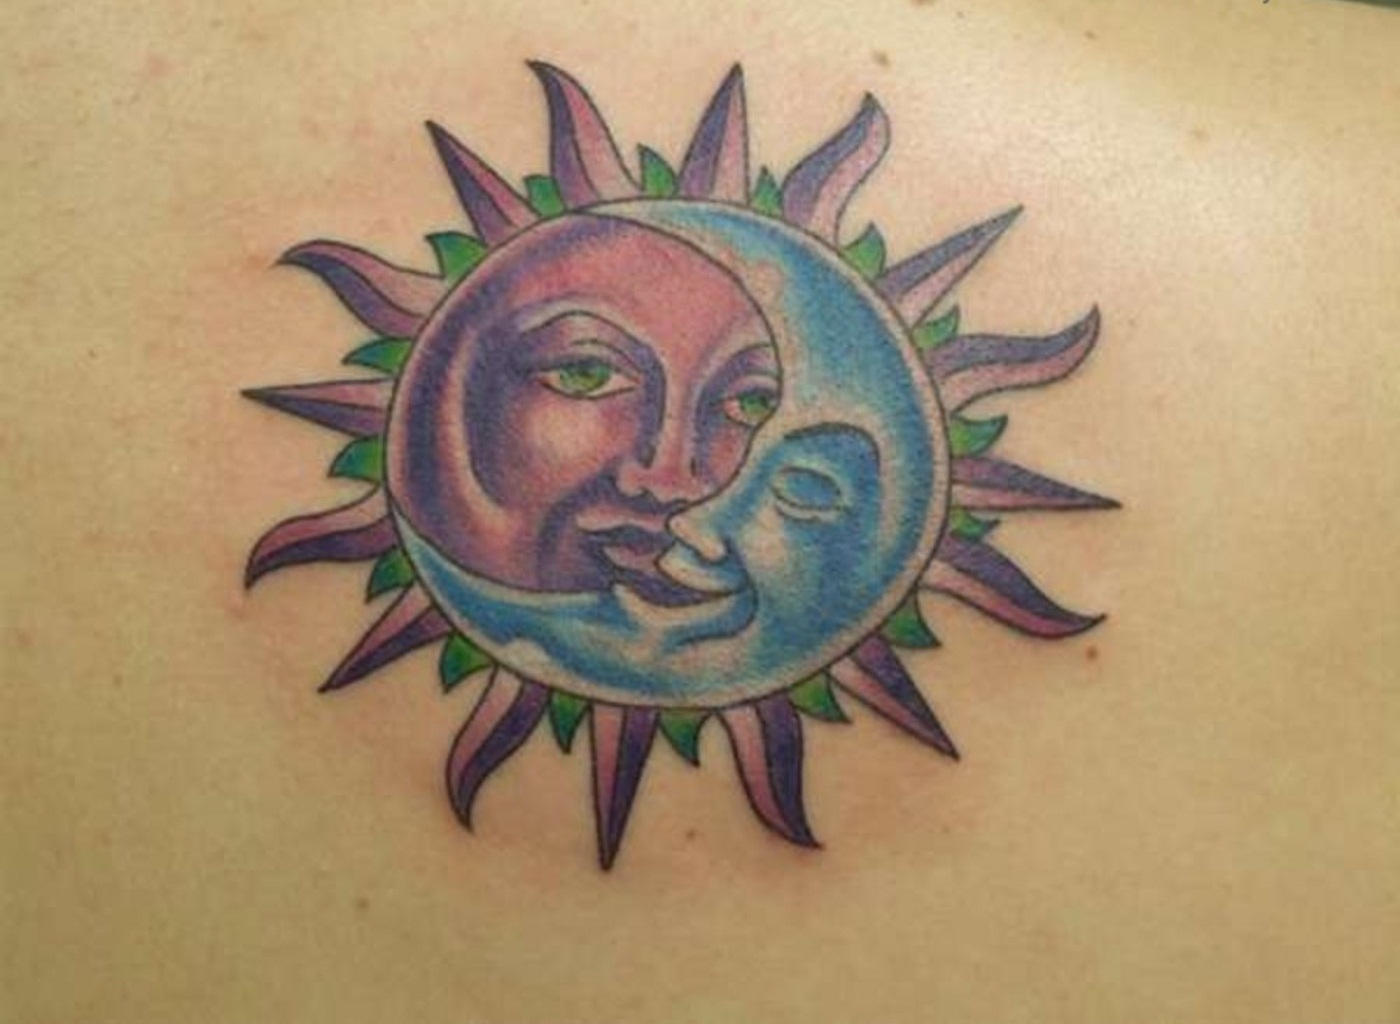 Moon Tattoos Designs, Ideas and Meaning